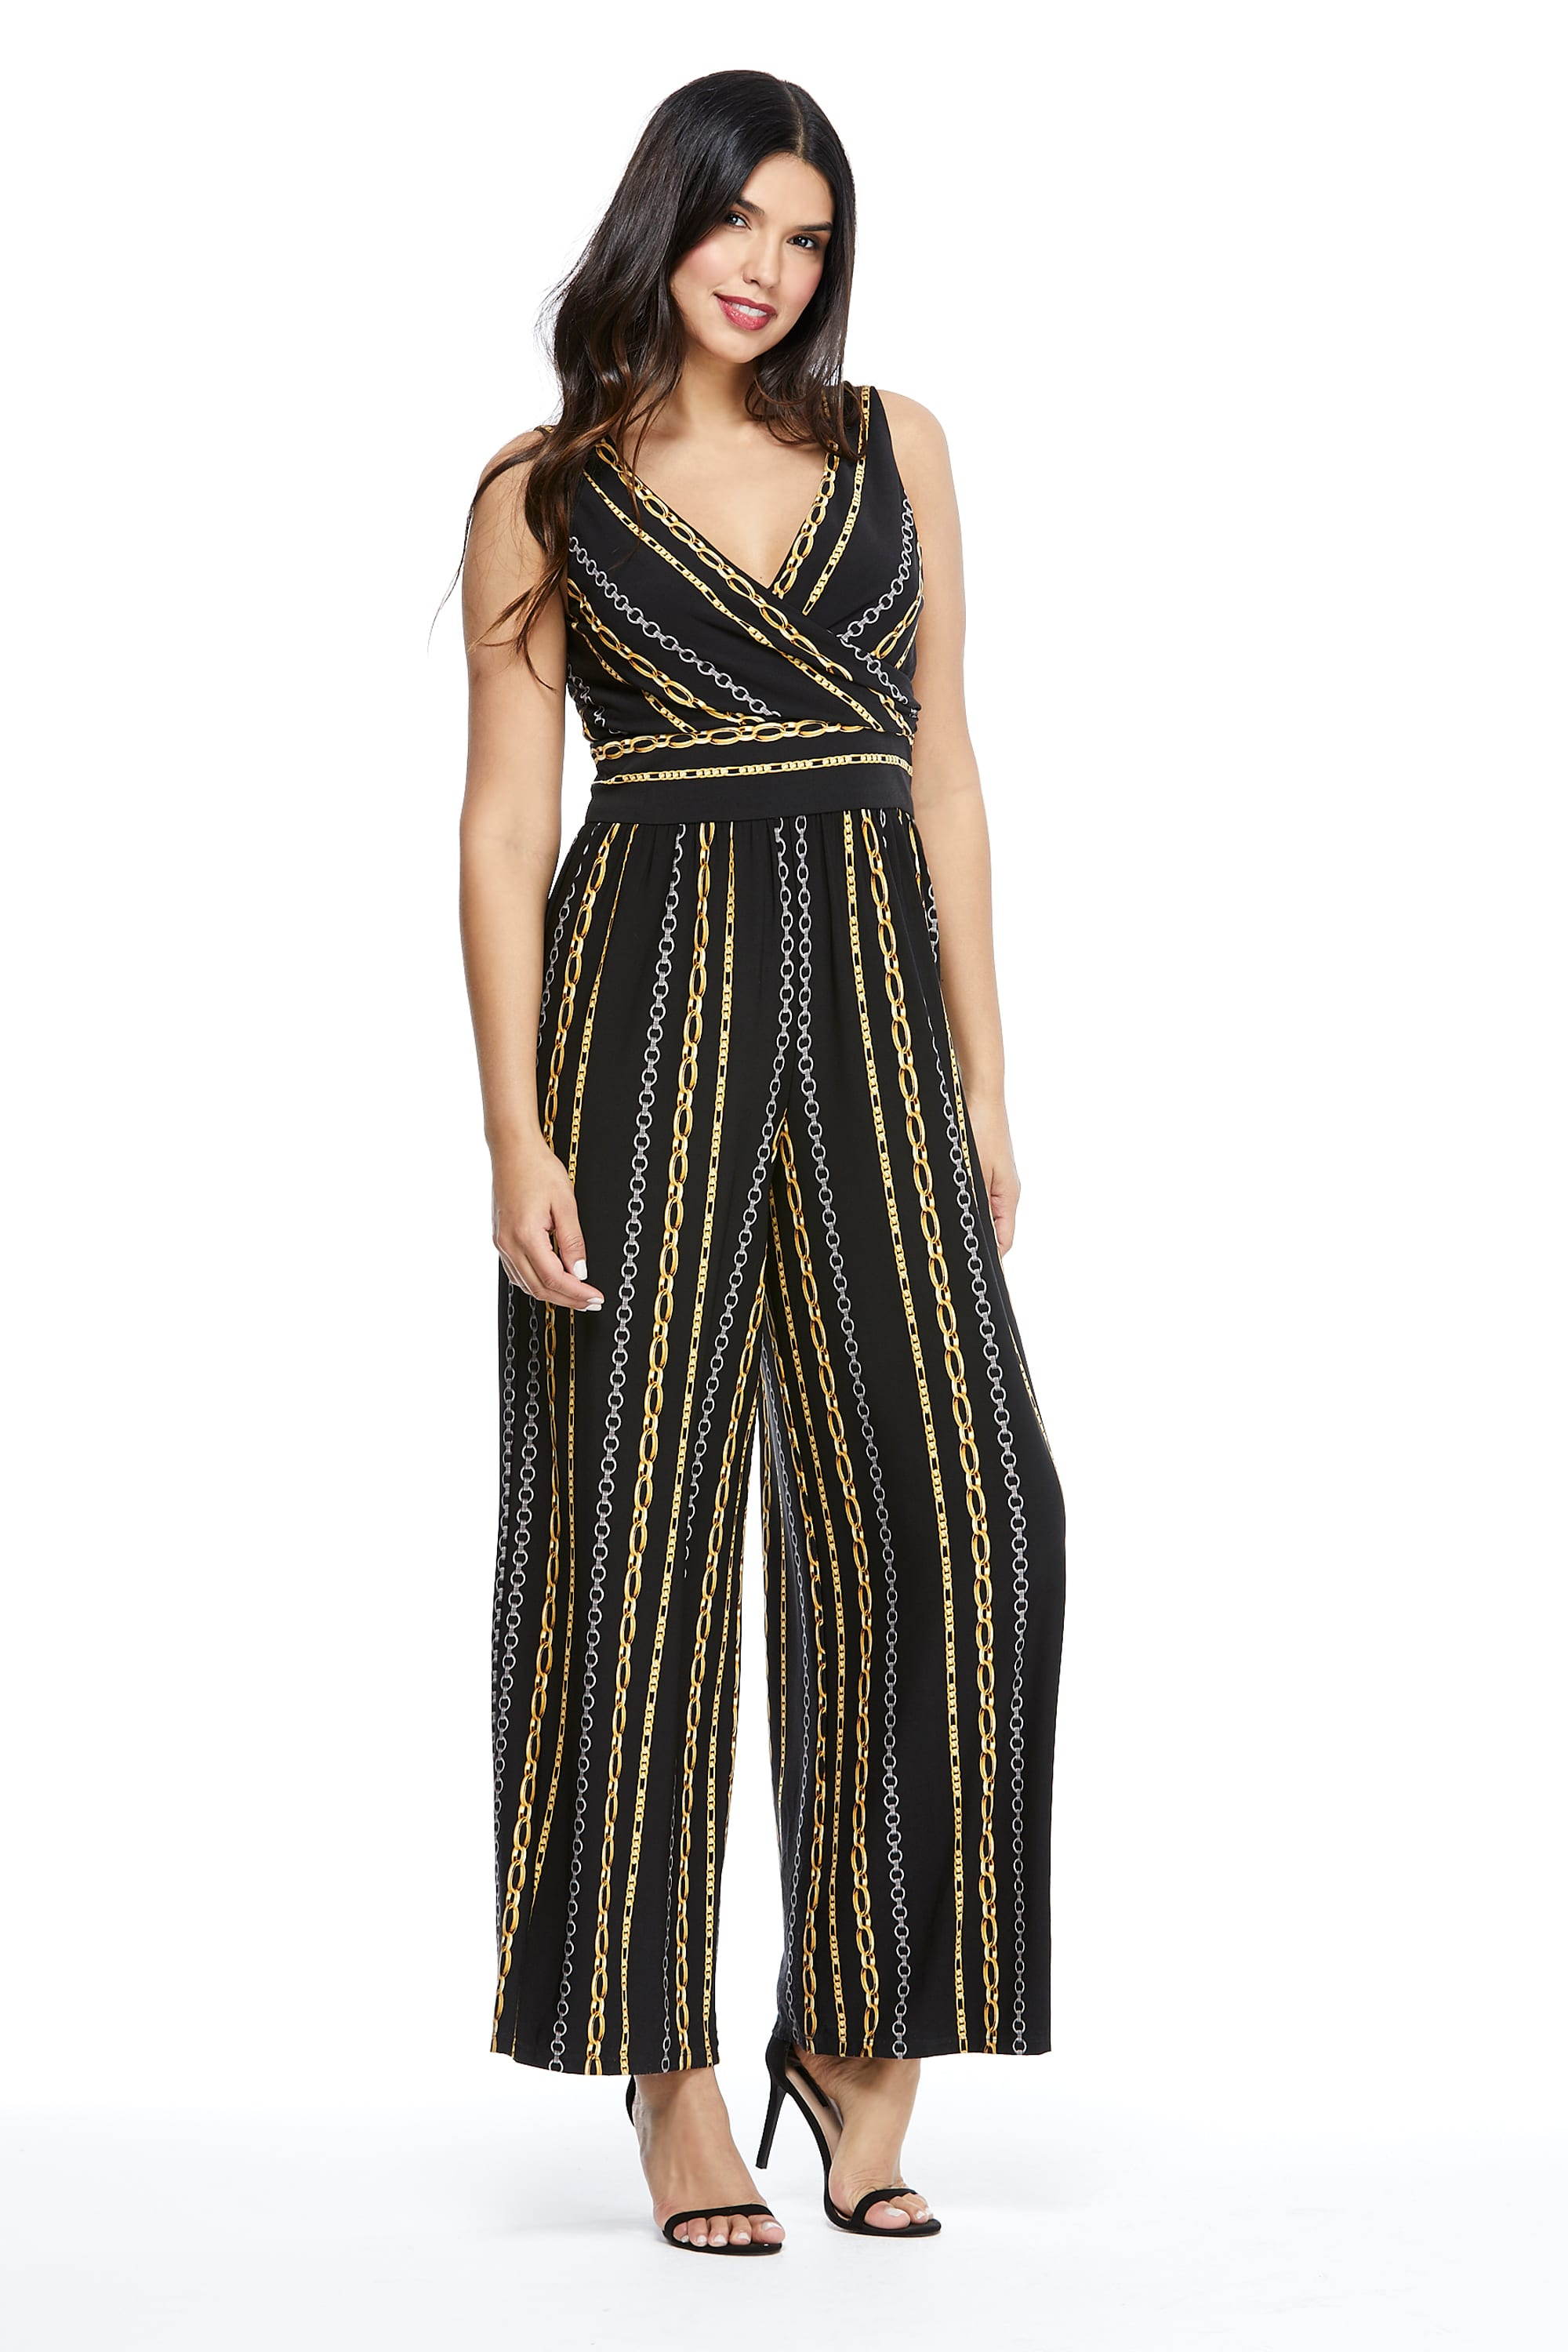 Whitney Chain Stripe Jumpsuit - Black/Gold - Front